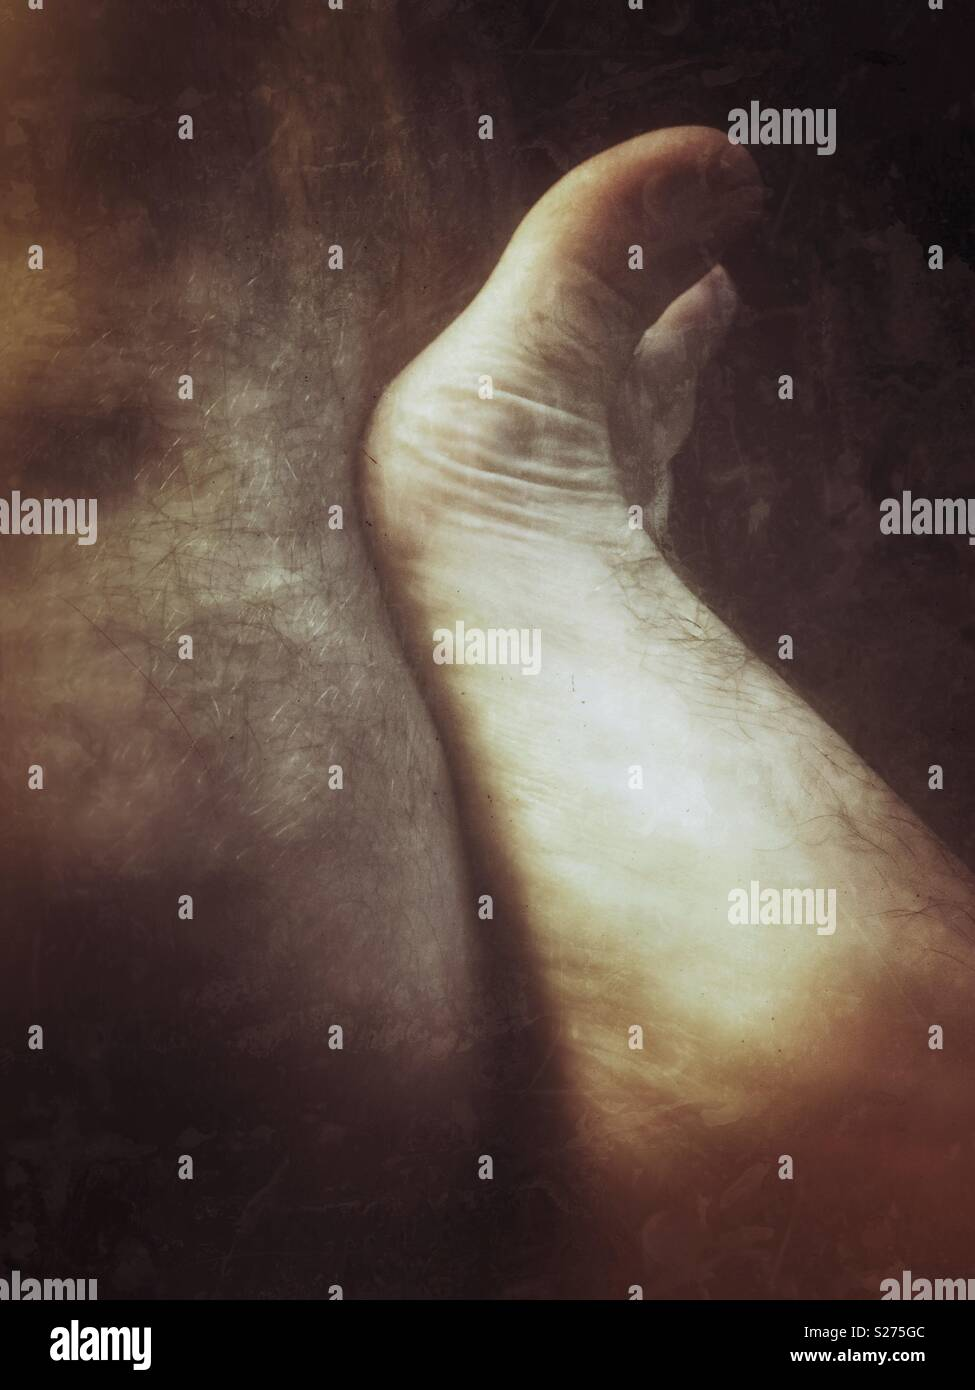 Foot against leg - Stock Image